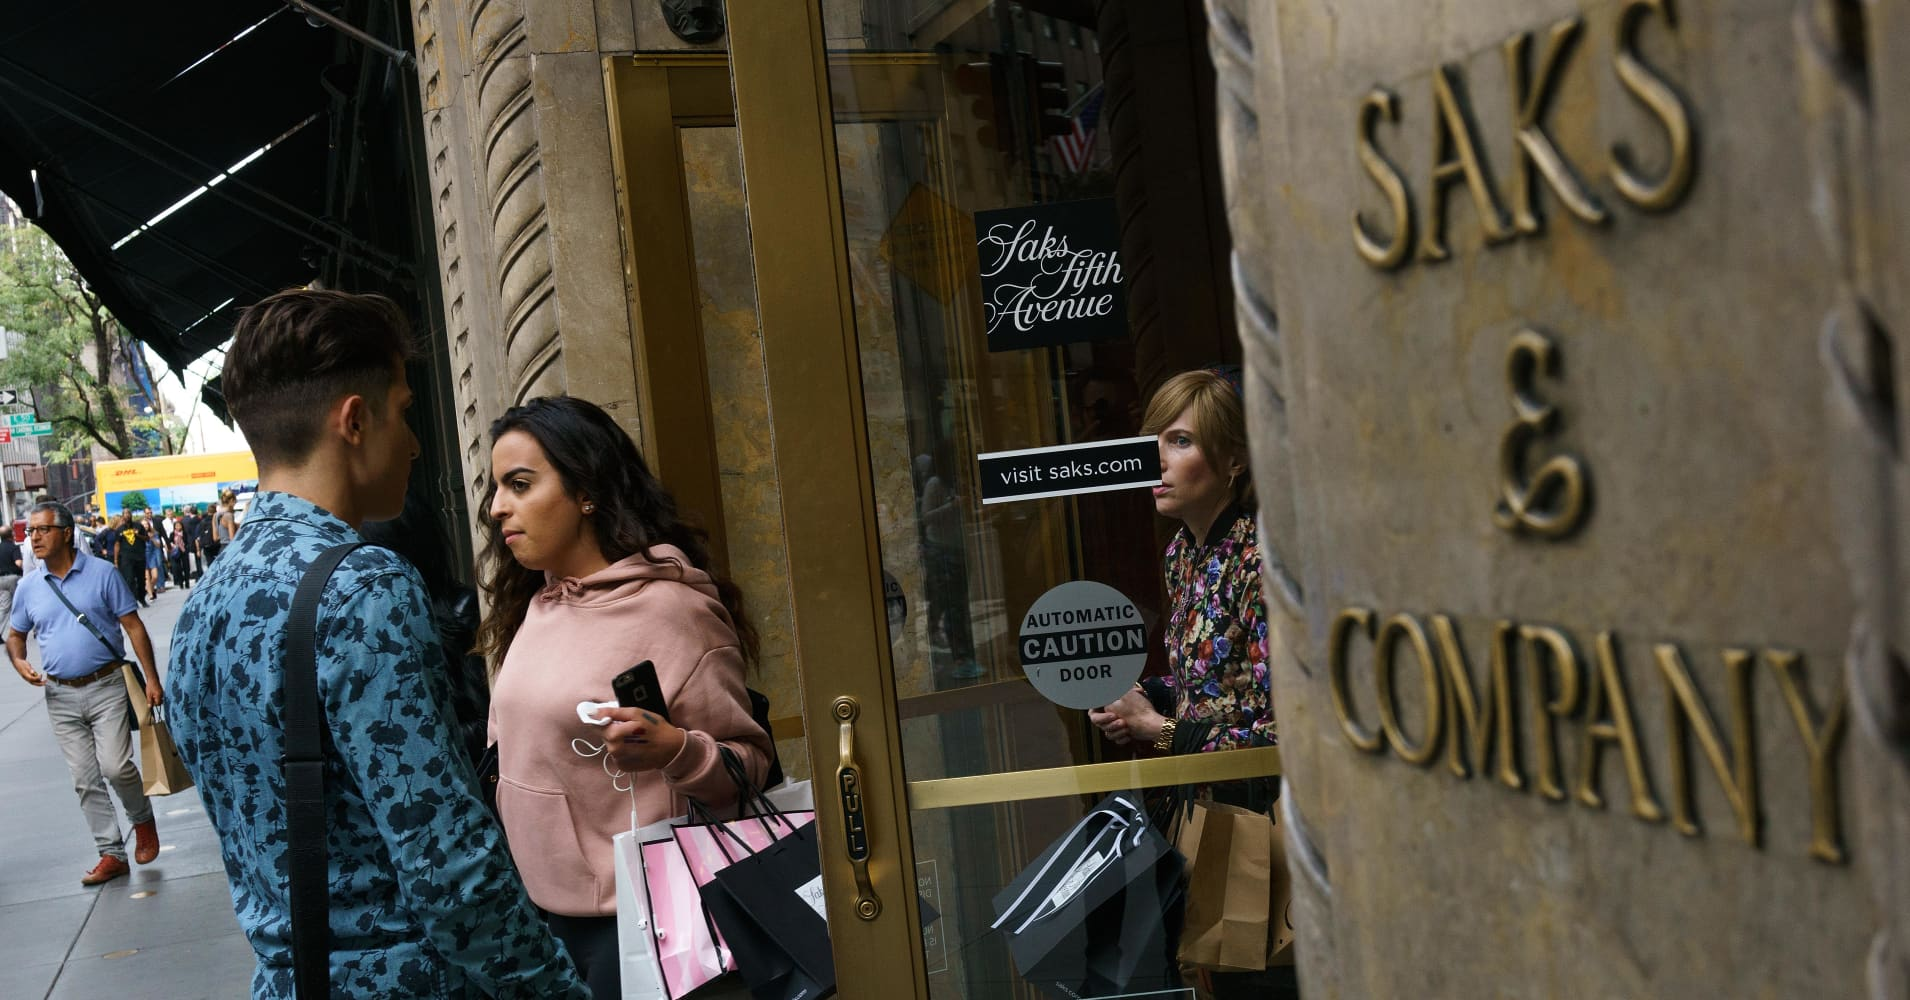 Hudson's Bay confirms data breach affecting Saks, Lord & Taylor customers